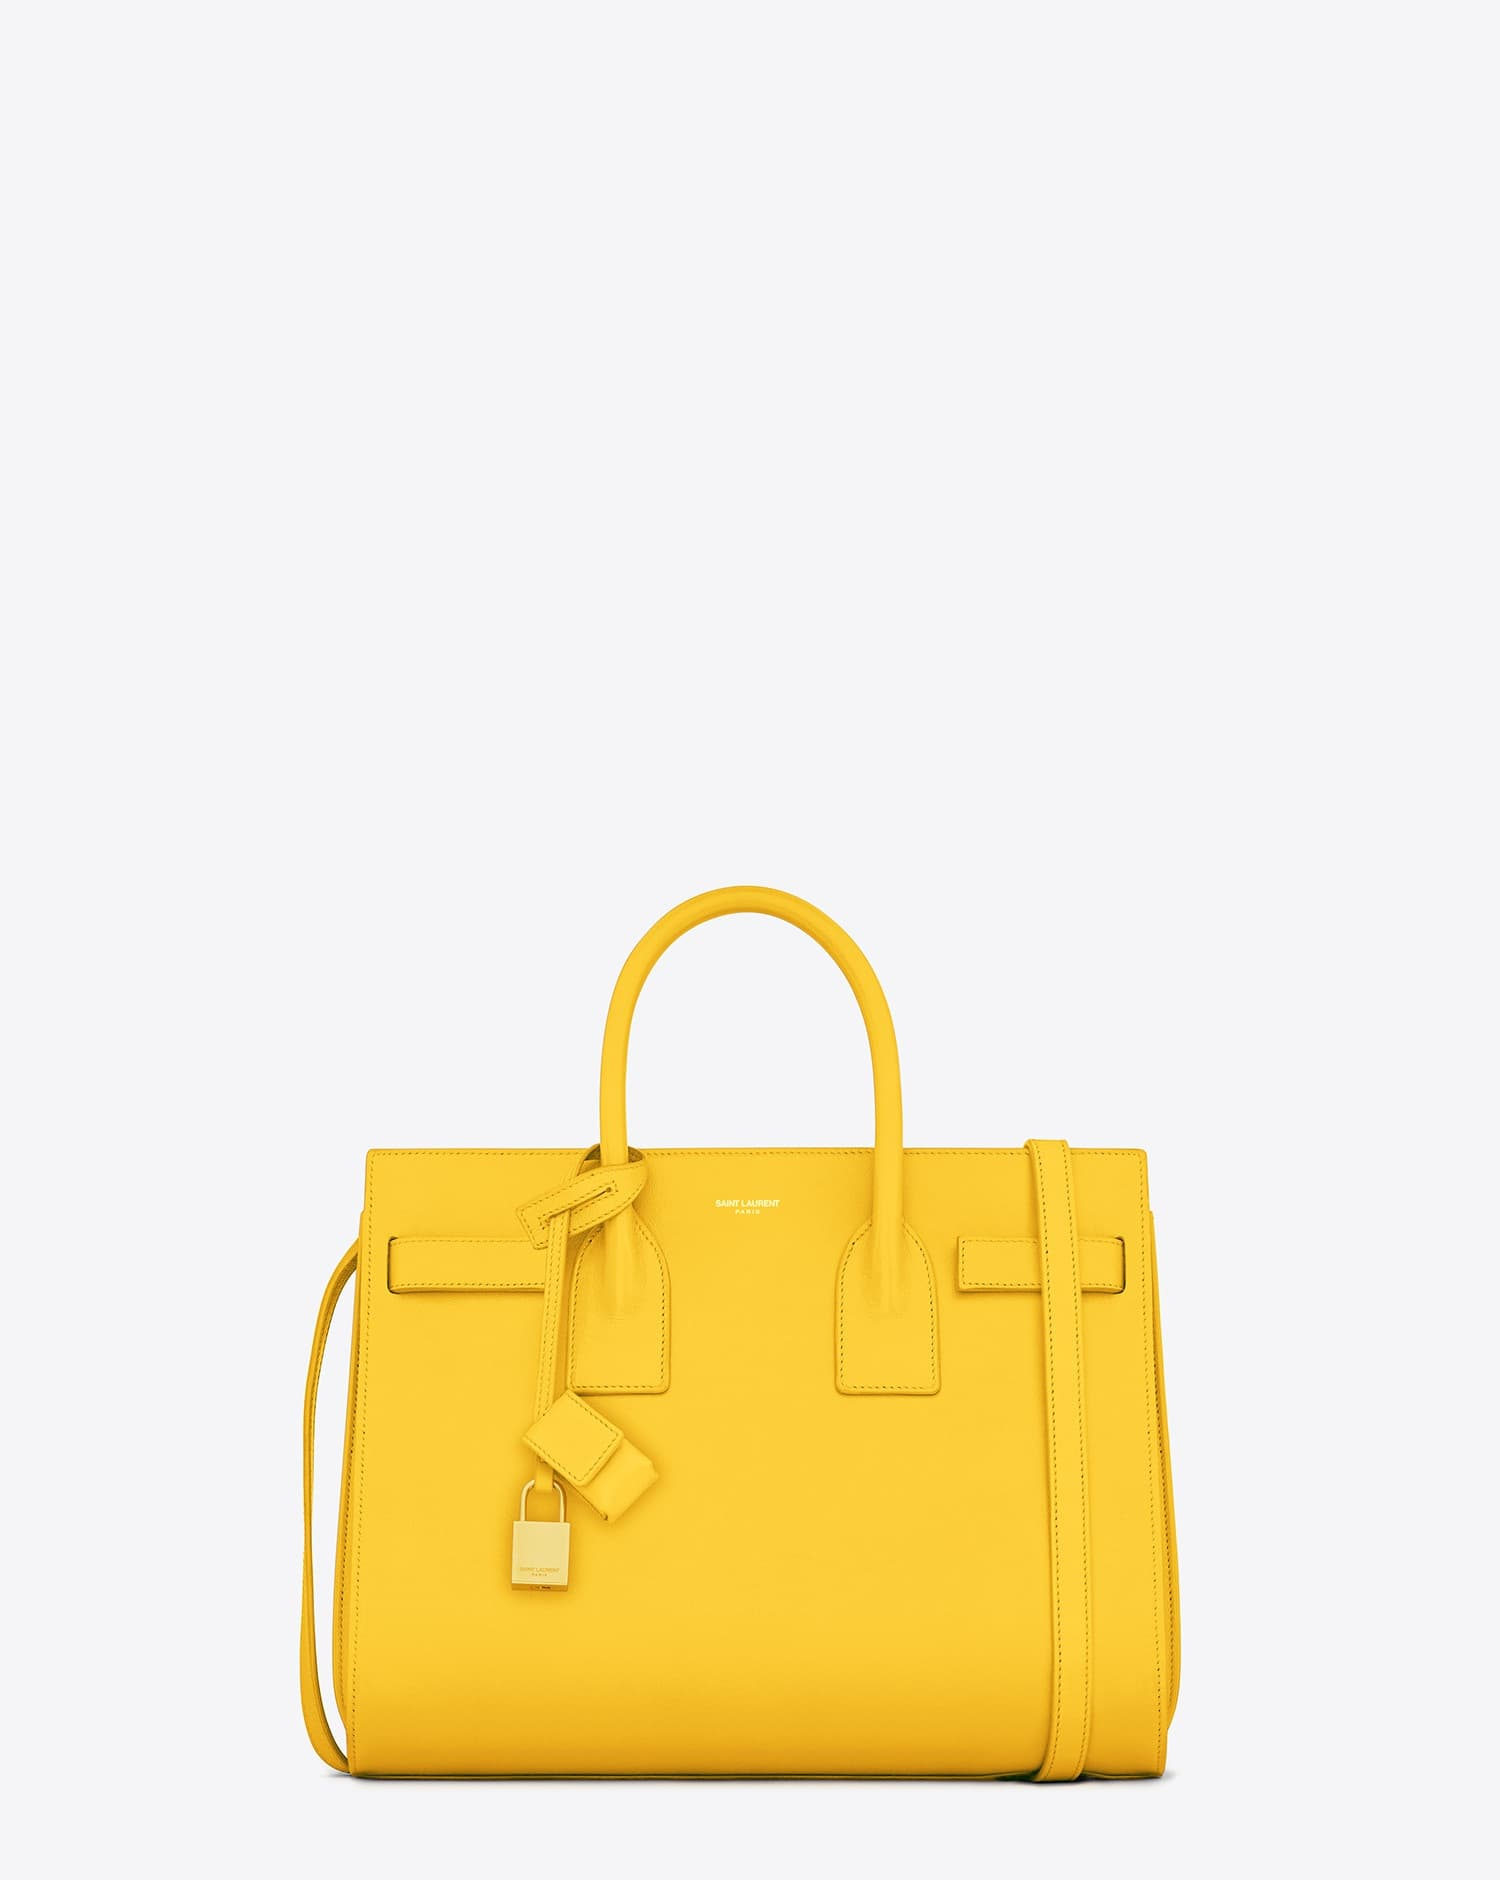 Saint Laurent Yellow Purse (Sac du Jour)